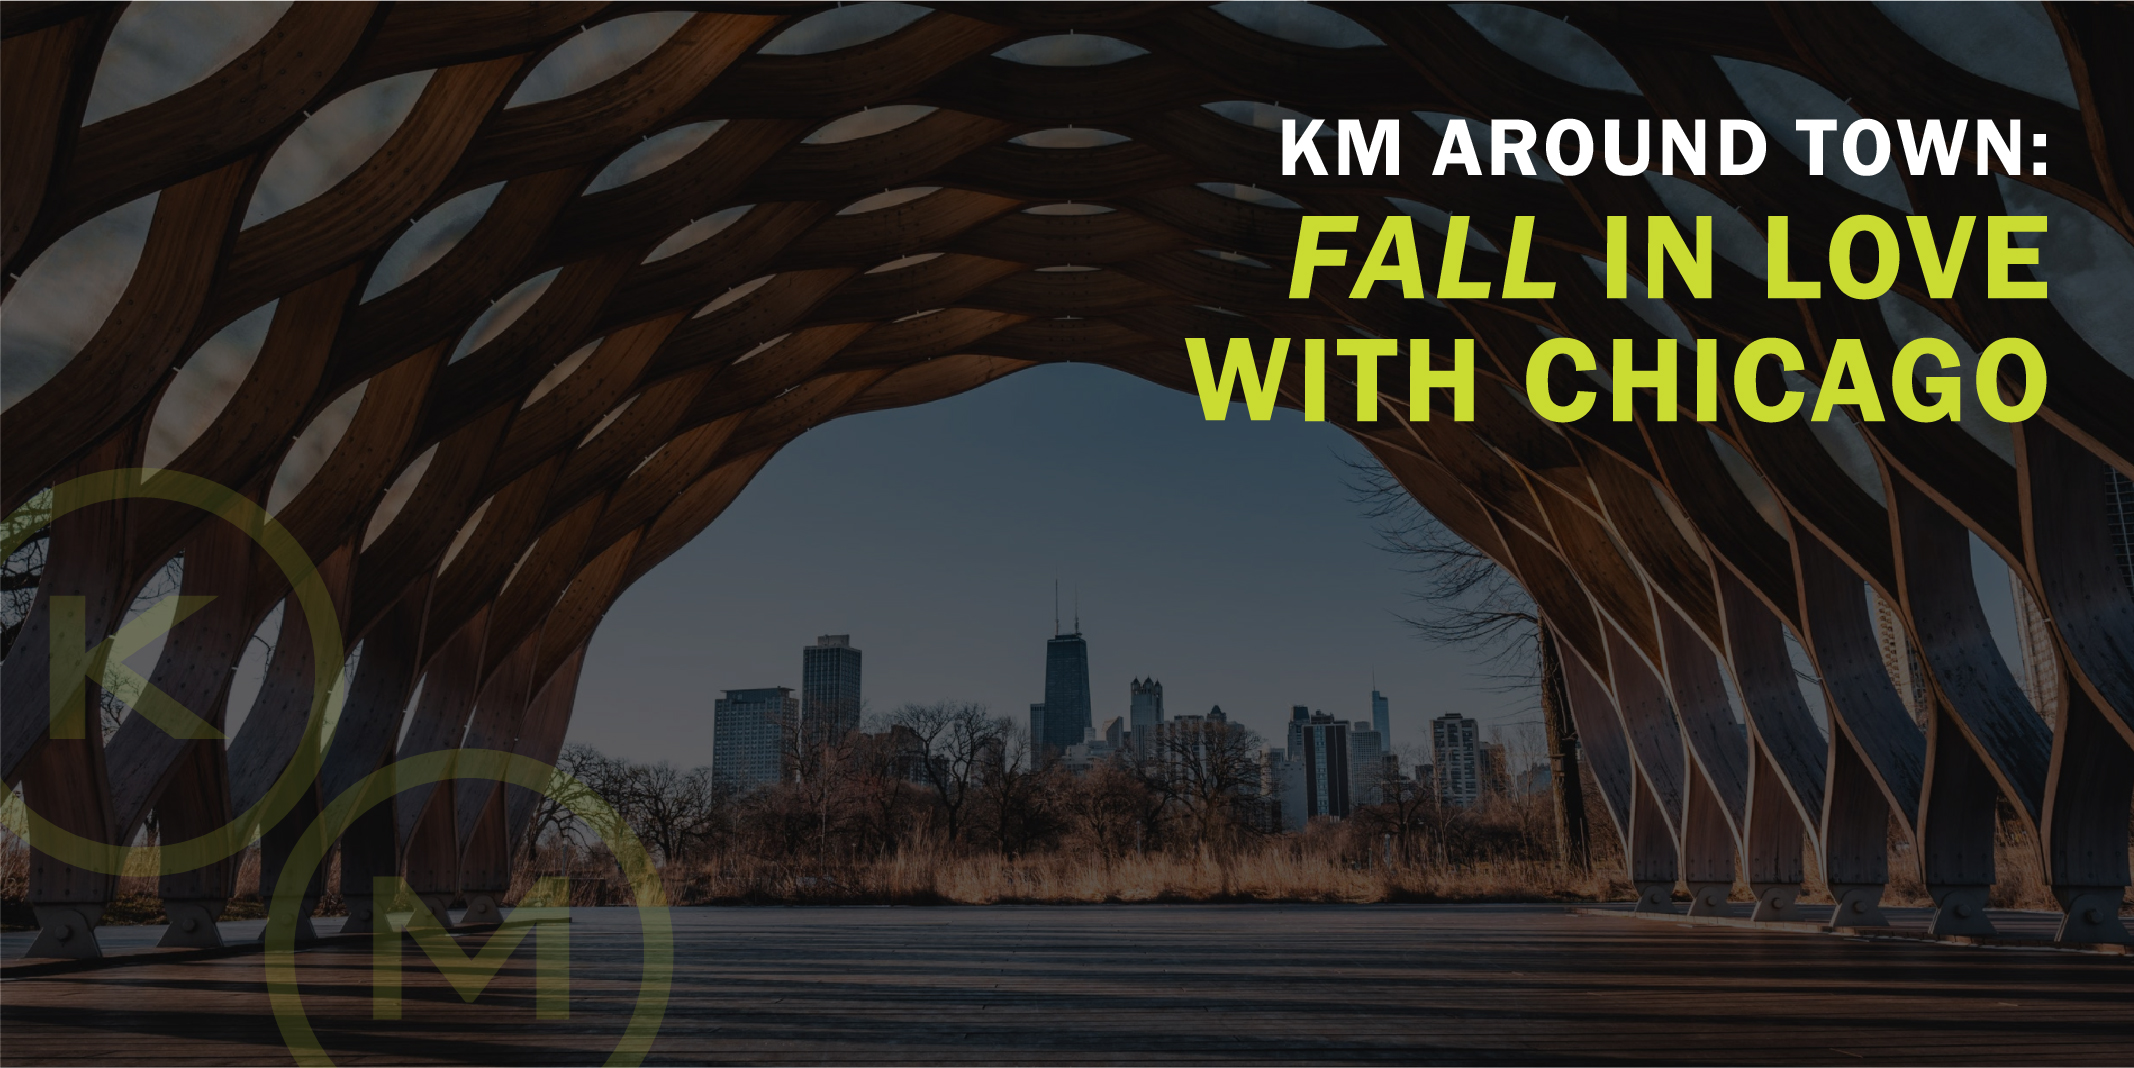 KM_Chicago-01[1]